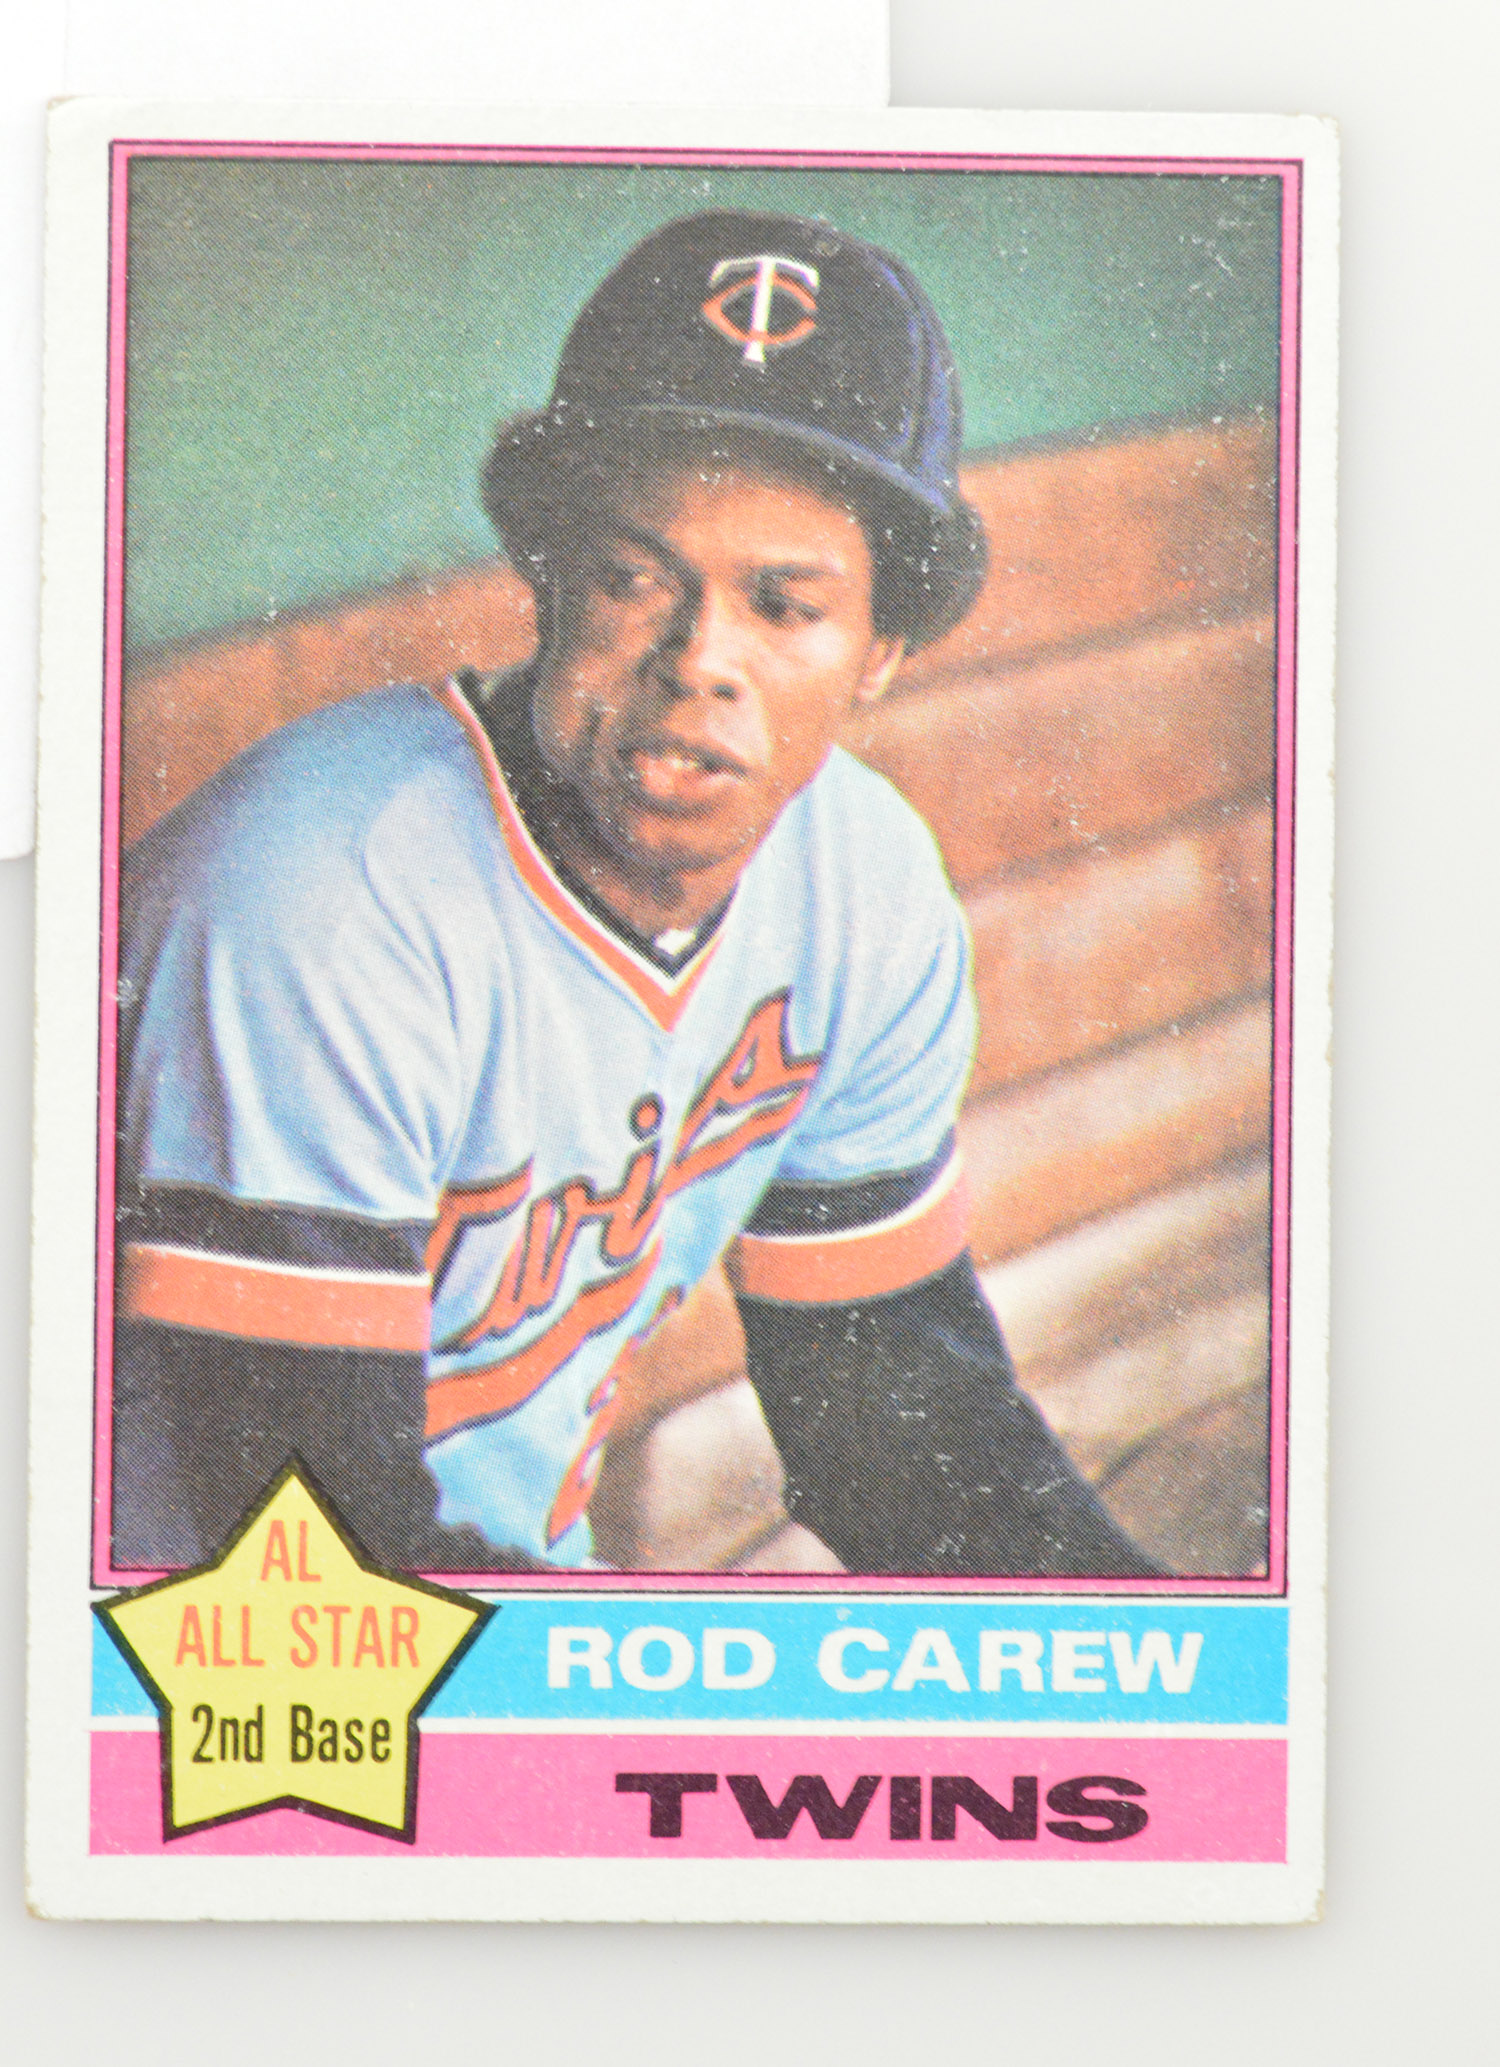 1976 Rod Carew Twins Topps #400 | Property Room